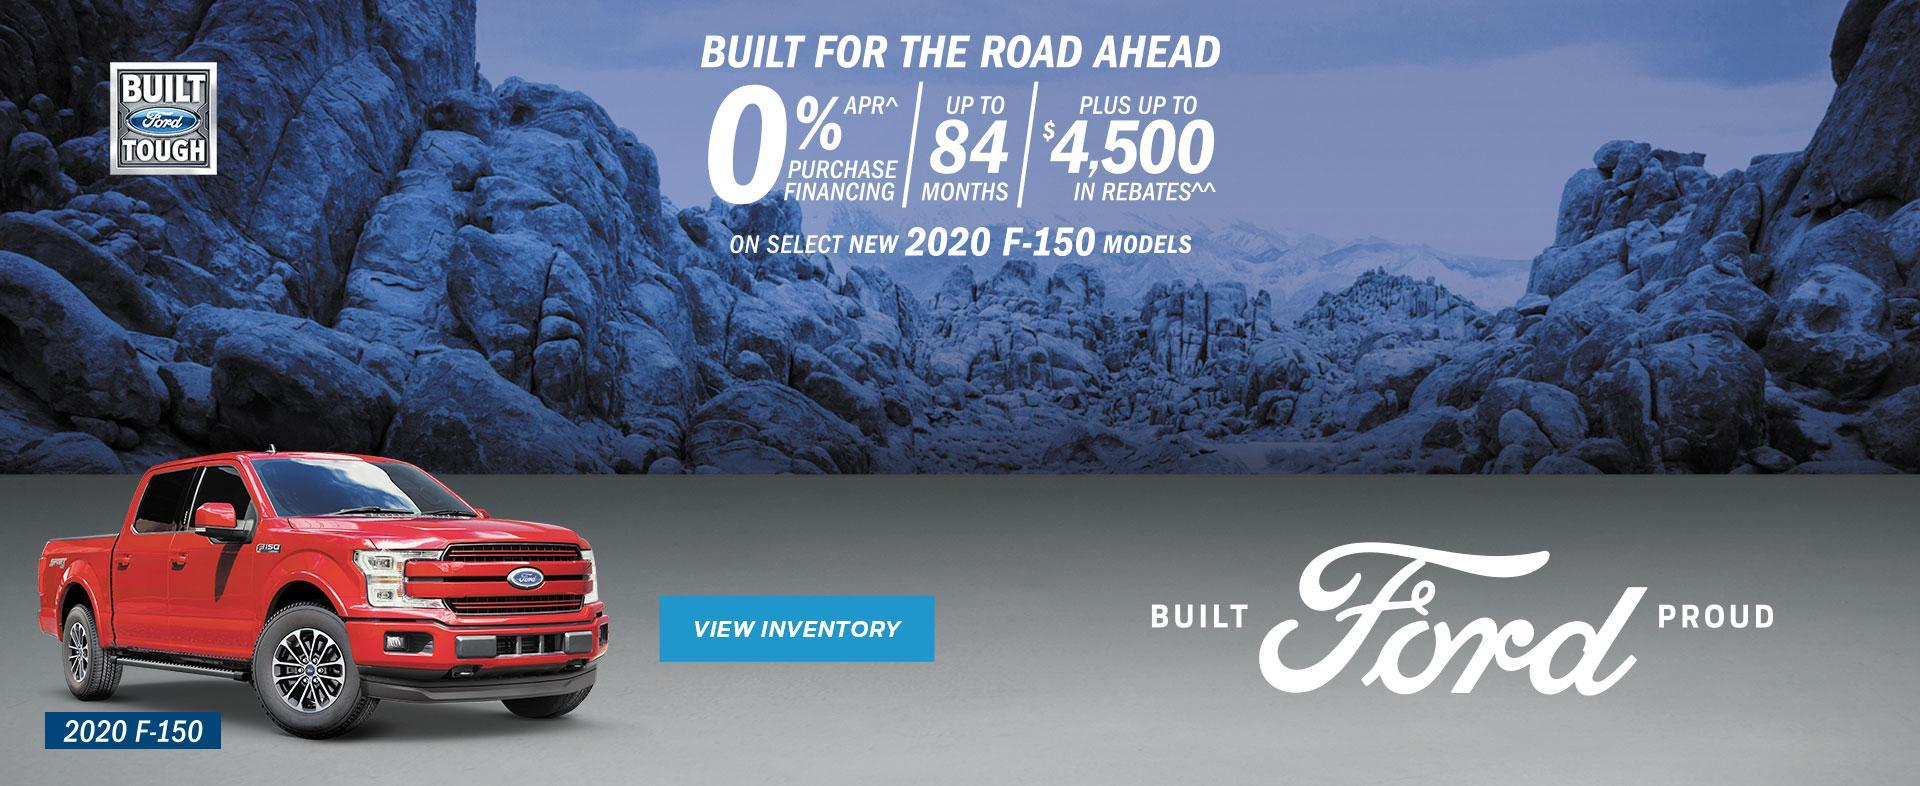 New 2020 Red F-150 Built for the road ahead